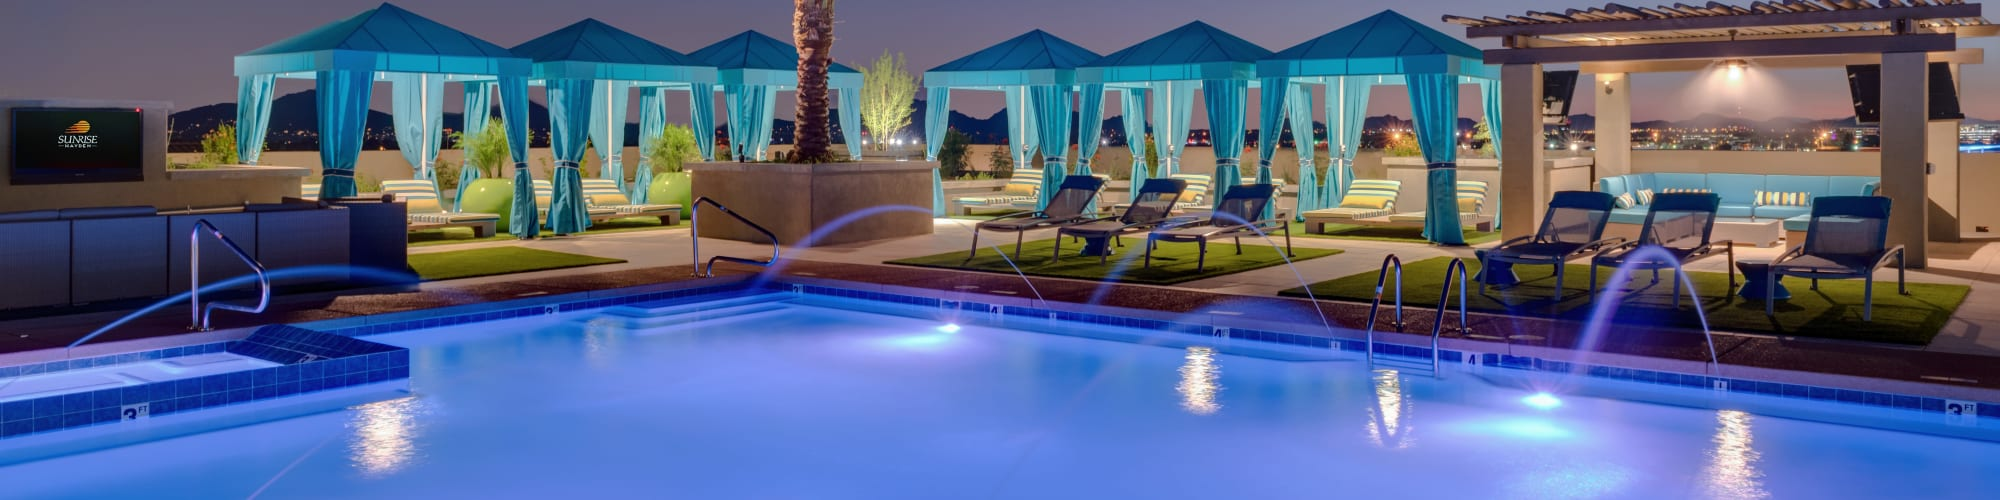 Apply to live at The Core Scottsdale in Scottsdale, Arizona